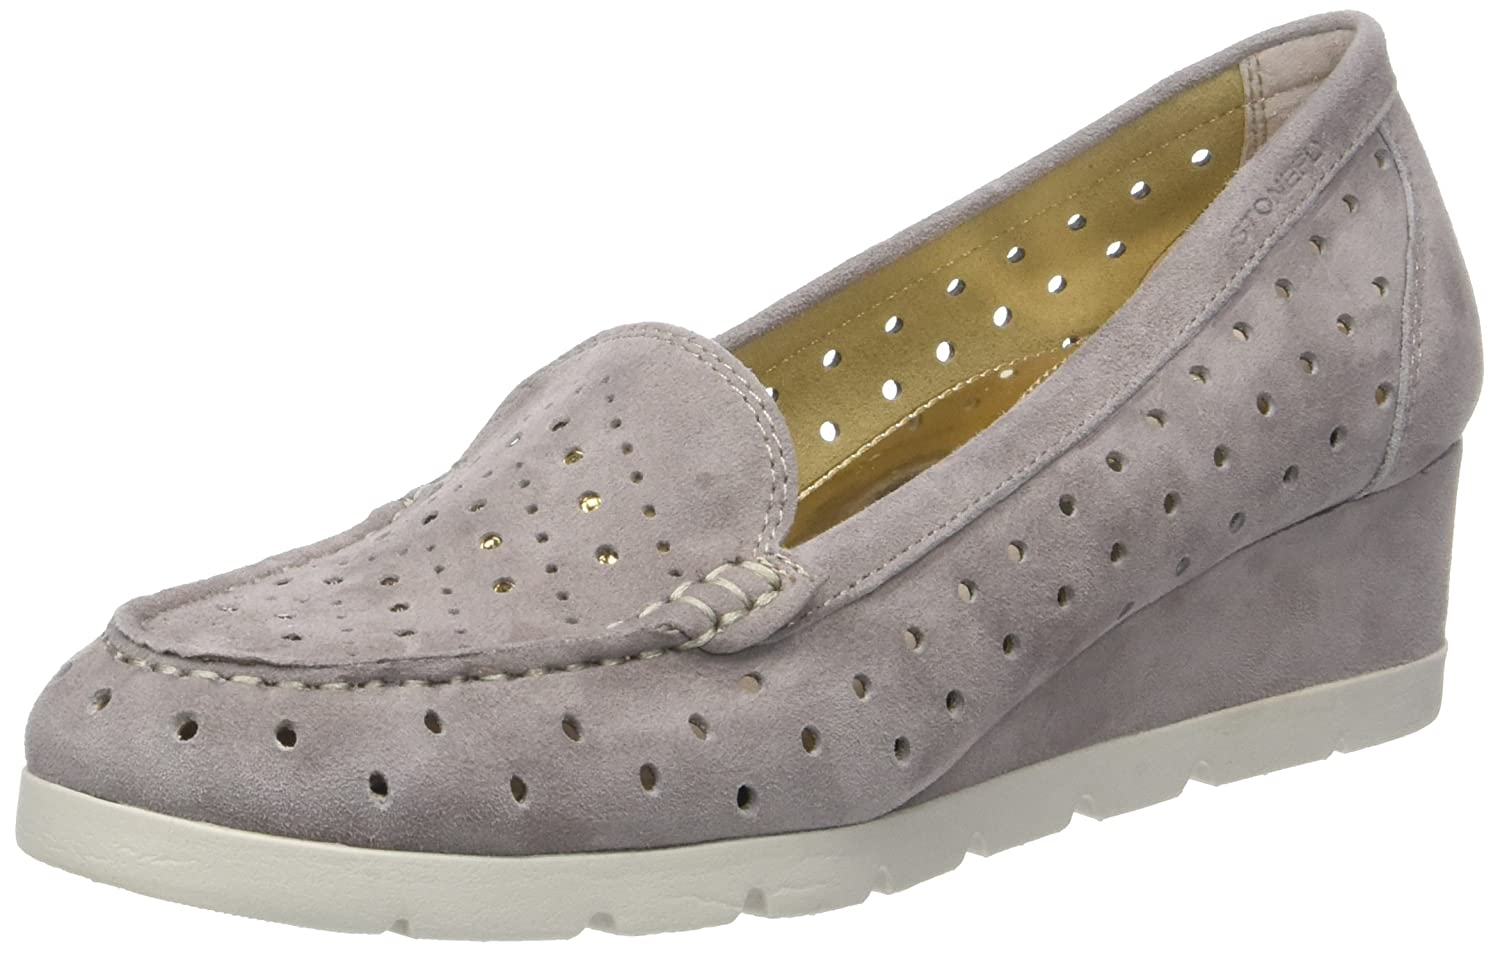 Stonefly Milly 6 Goat Suede, Zapatos con Plataforma para Mujer 37 EU|Beige (Taupe Brown 075)